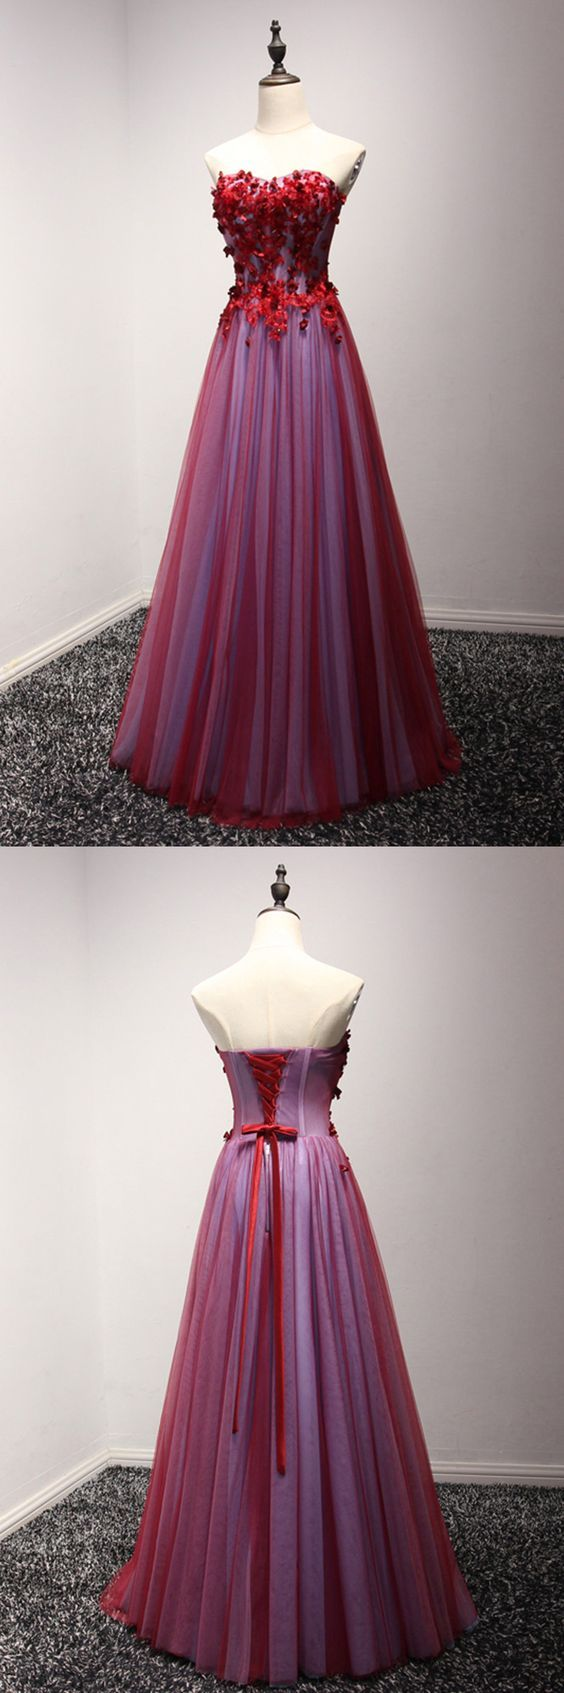 Long Red Strapless Prom Dress With Beaded Floral Lace M1286 In 2021 Strapless Prom Dress Prom Dresses Trendy Dress Styles [ 1693 x 564 Pixel ]